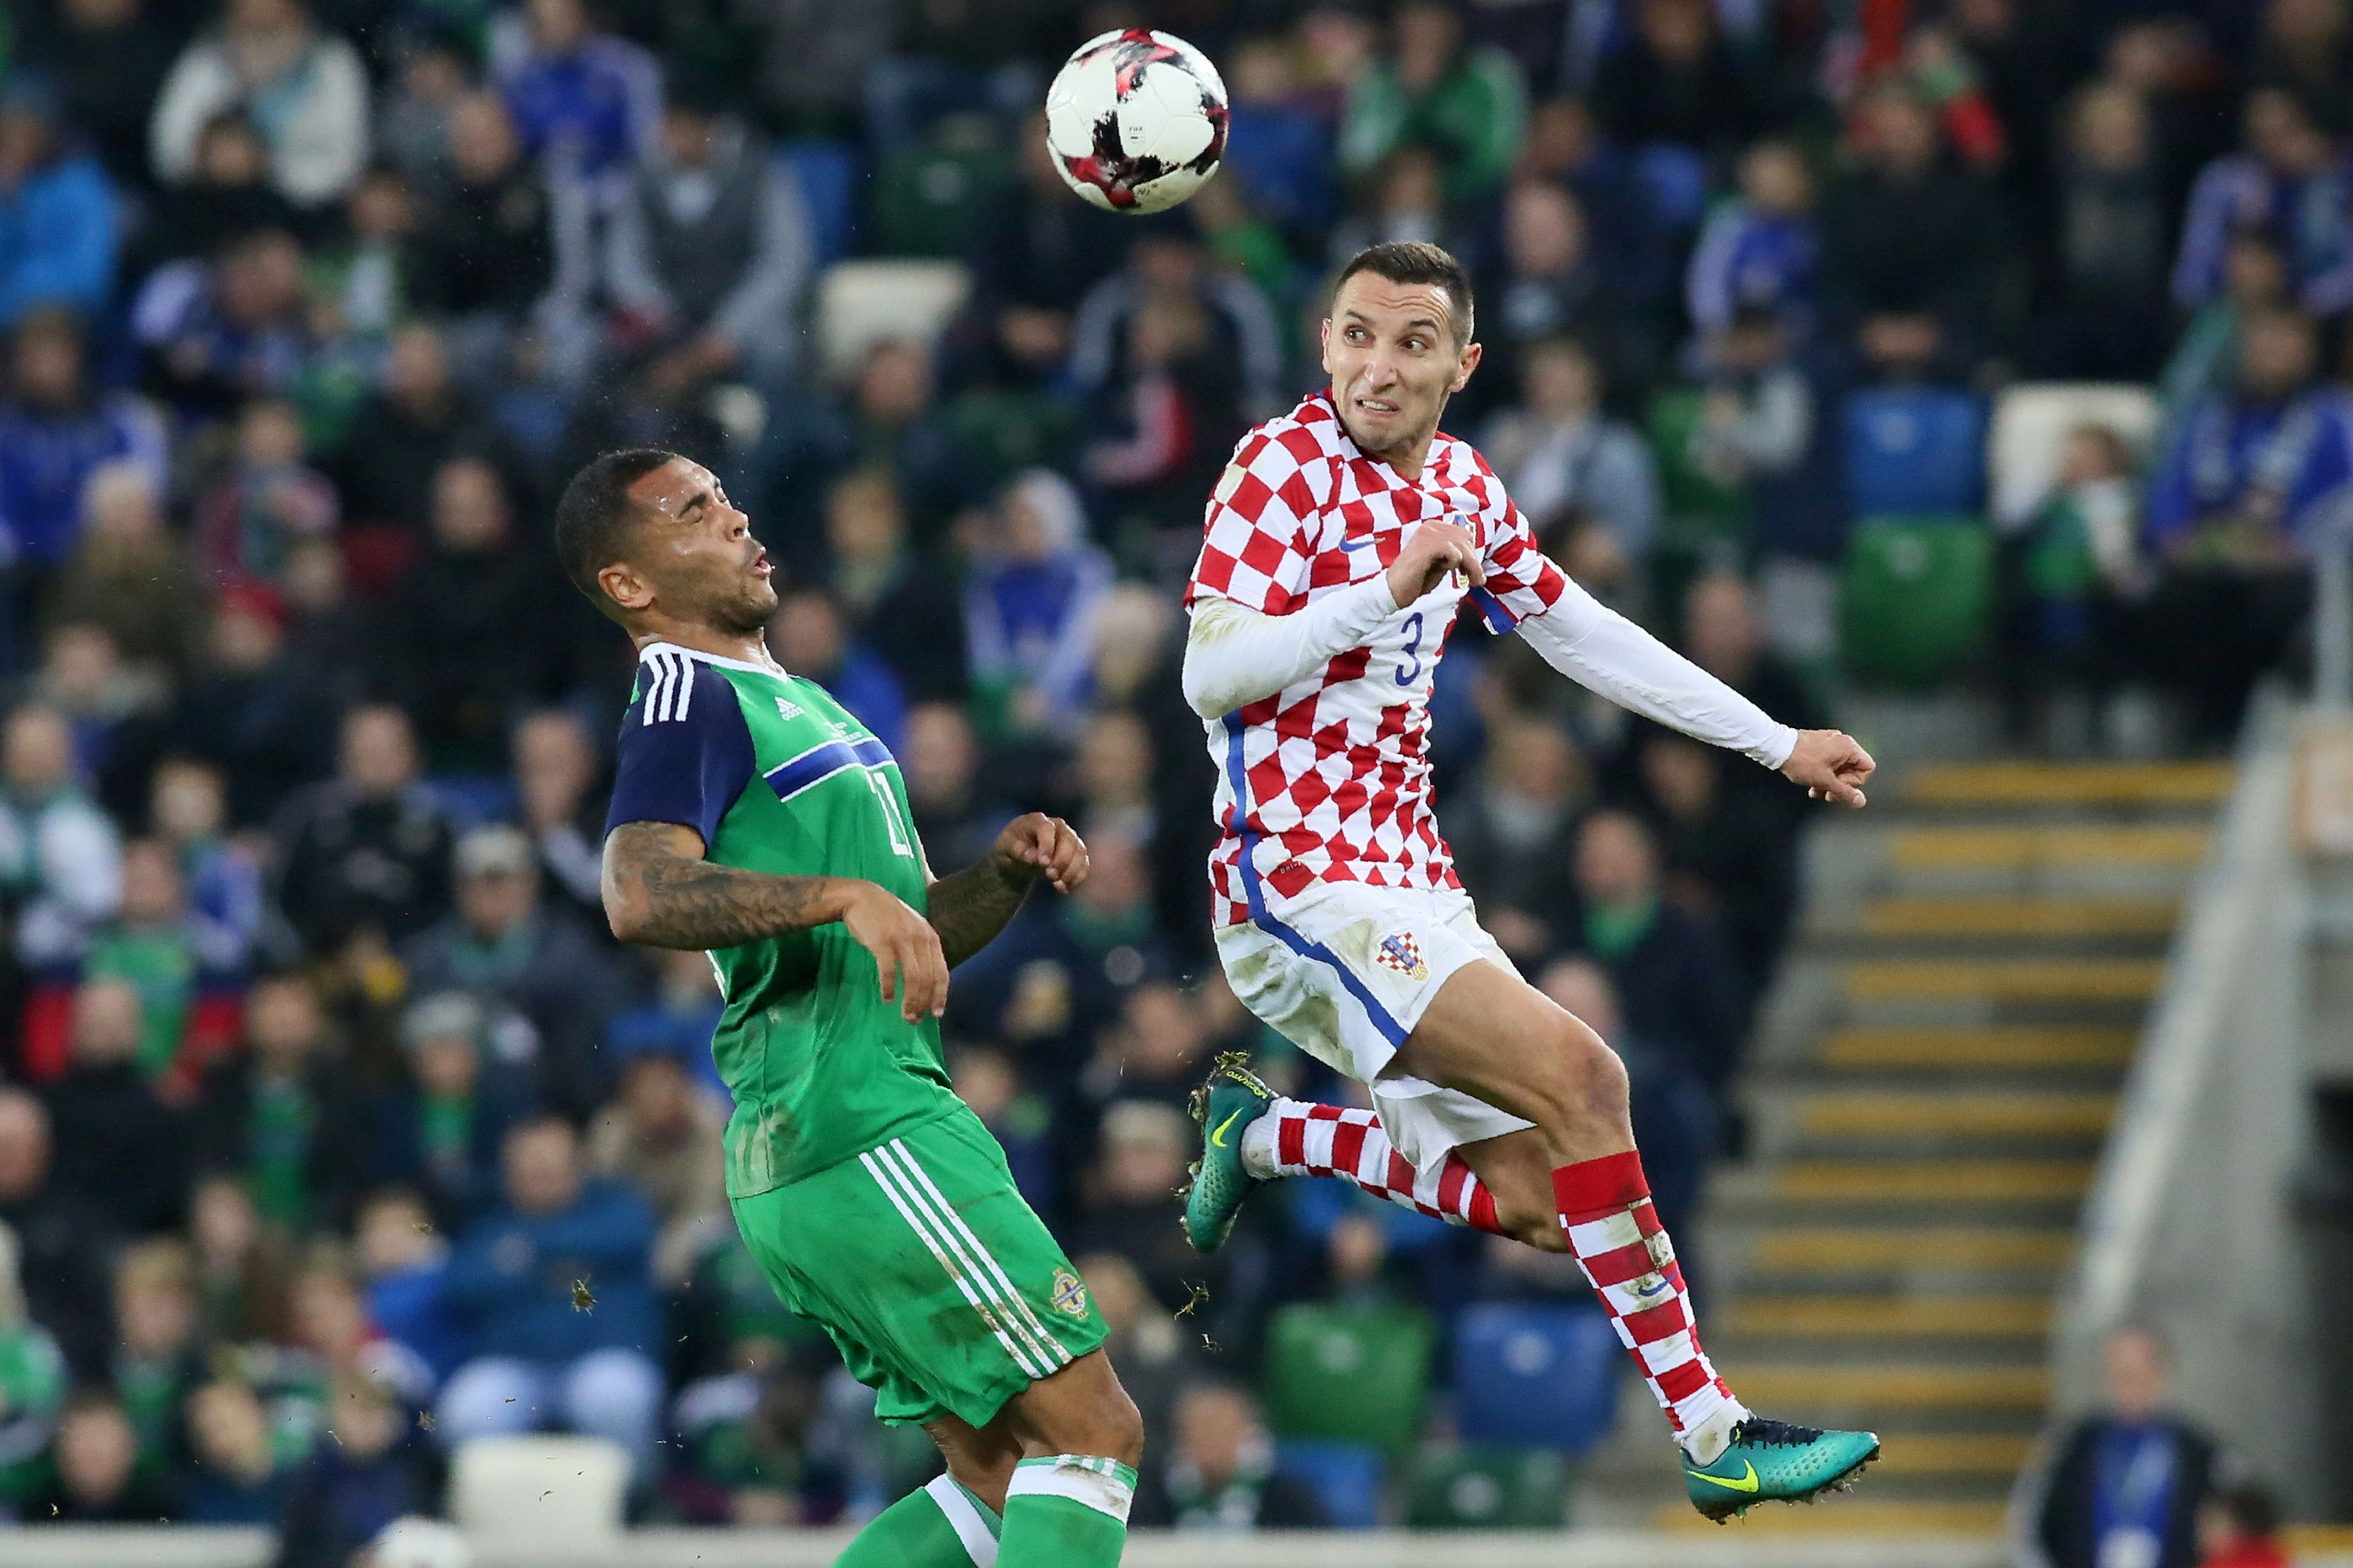 marin leovac - northern ireland croatia - friendly - 15112016